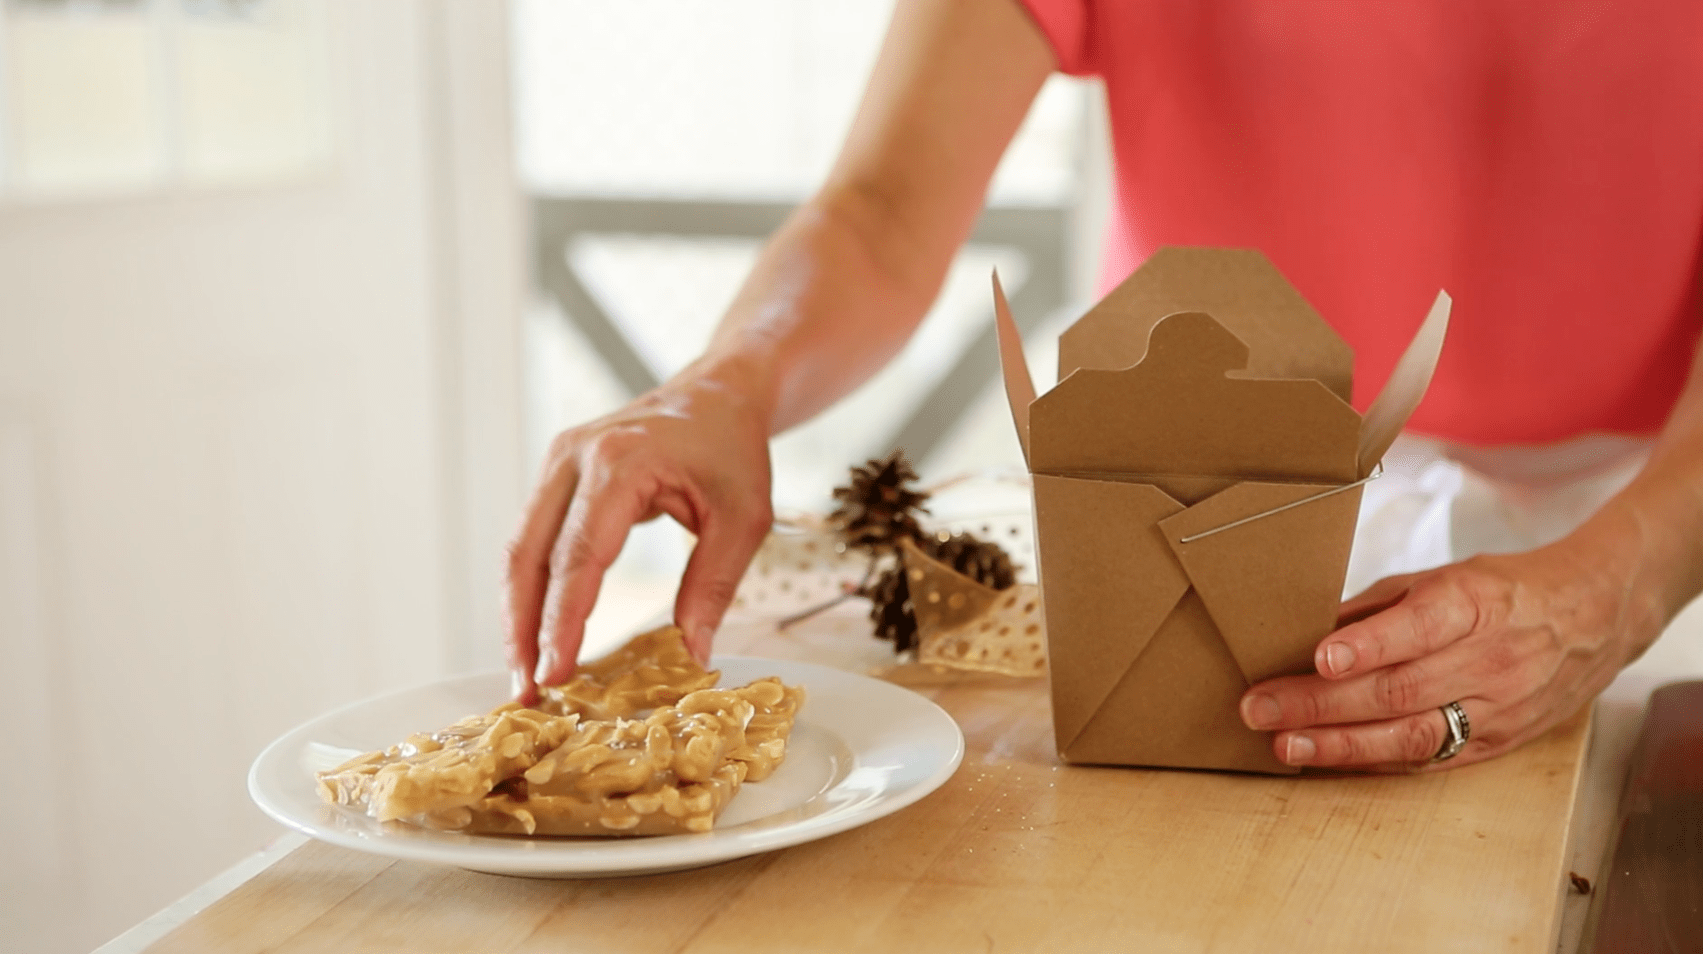 3 DIY Food Gift Ideas